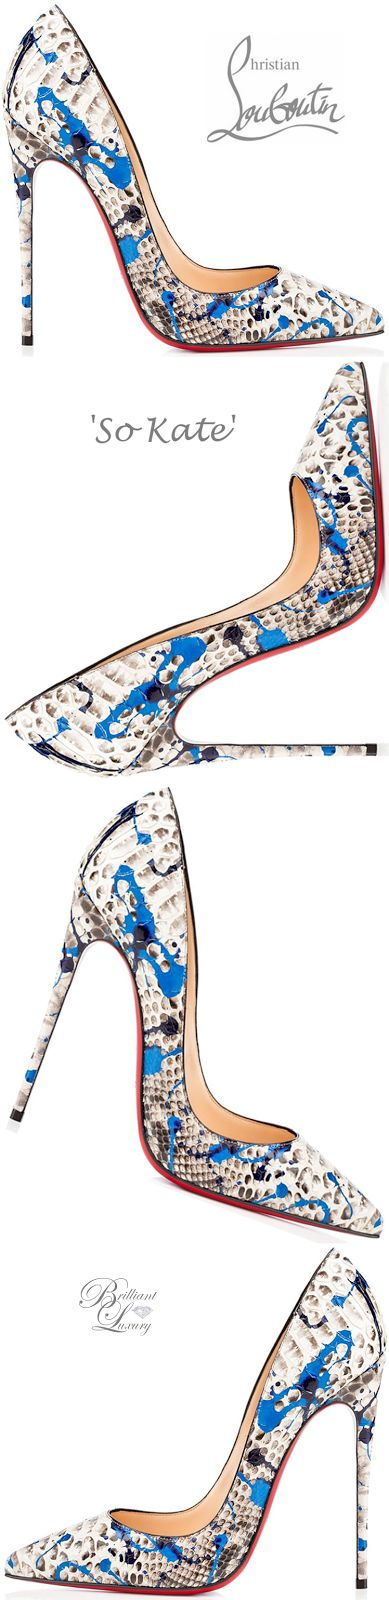 ♦Christian Louboutin Collection Spring 2015